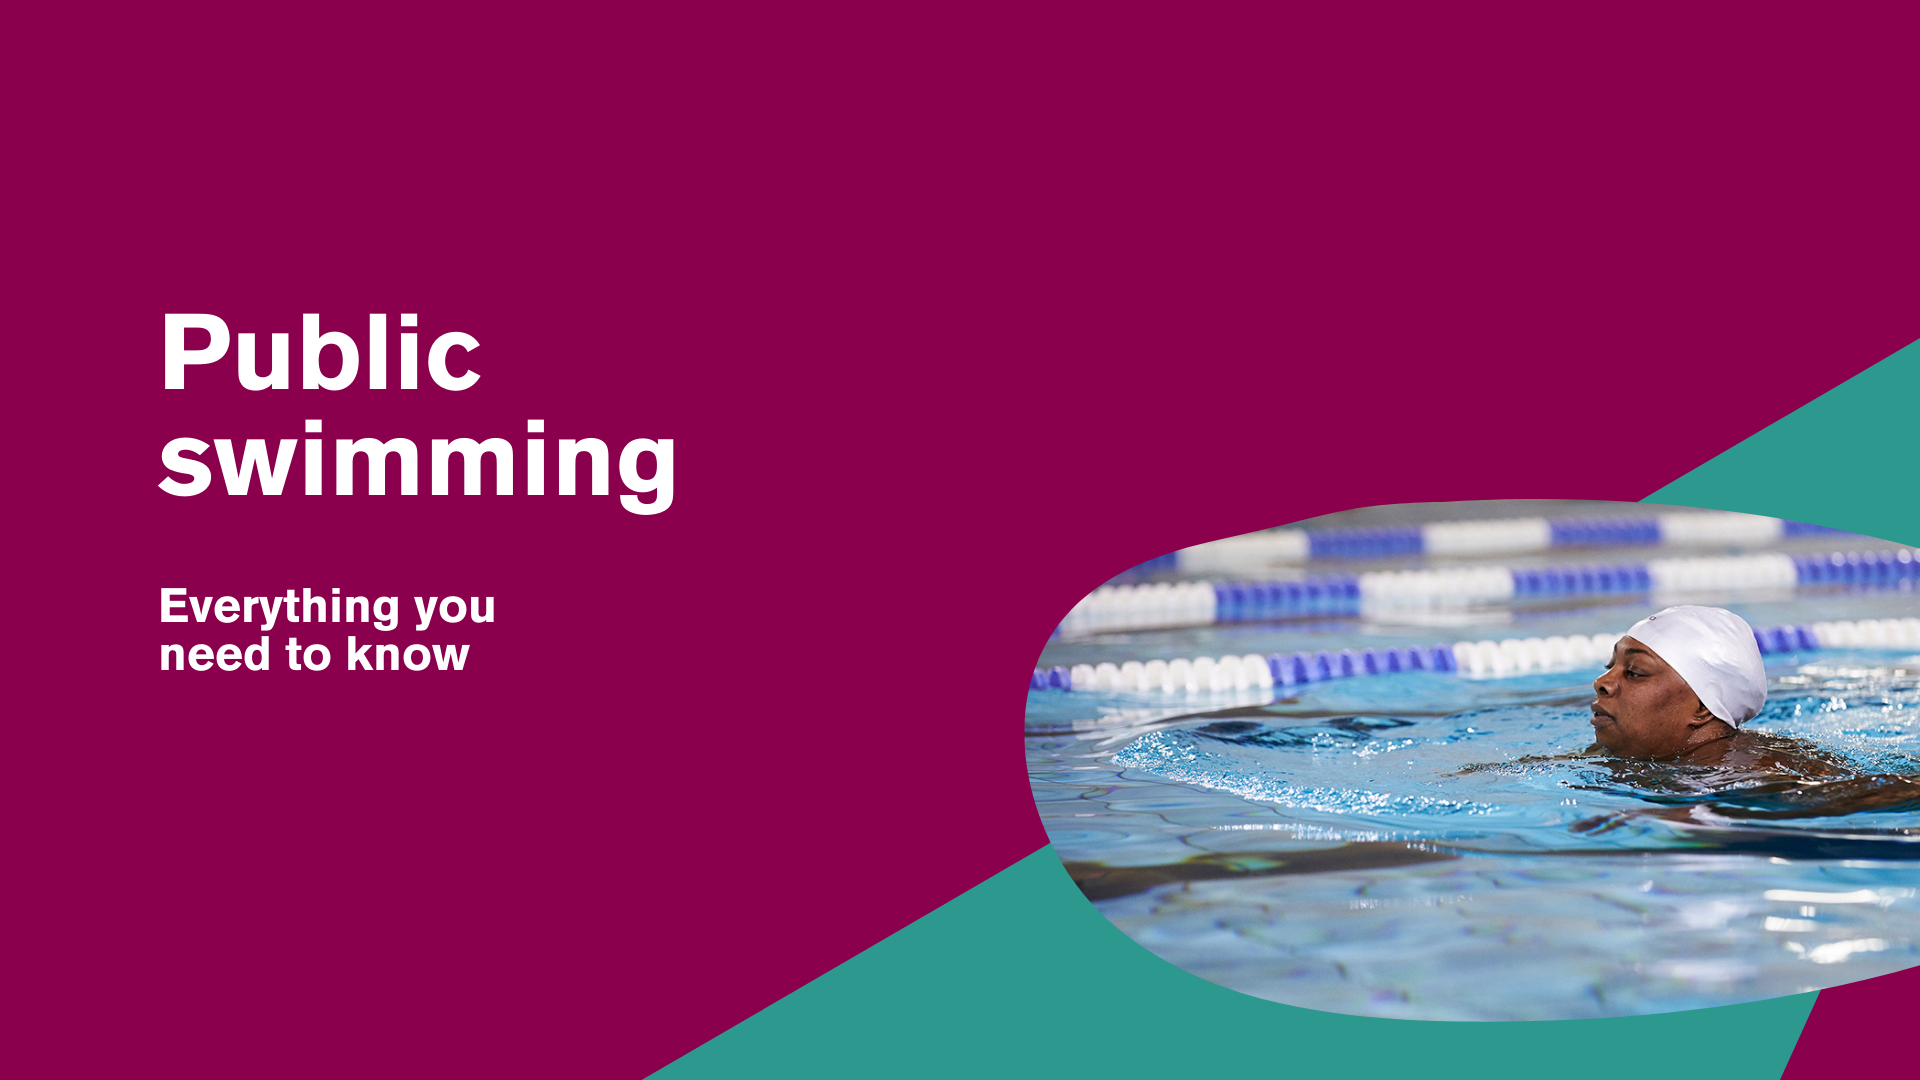 Everything you need to know about public swimming